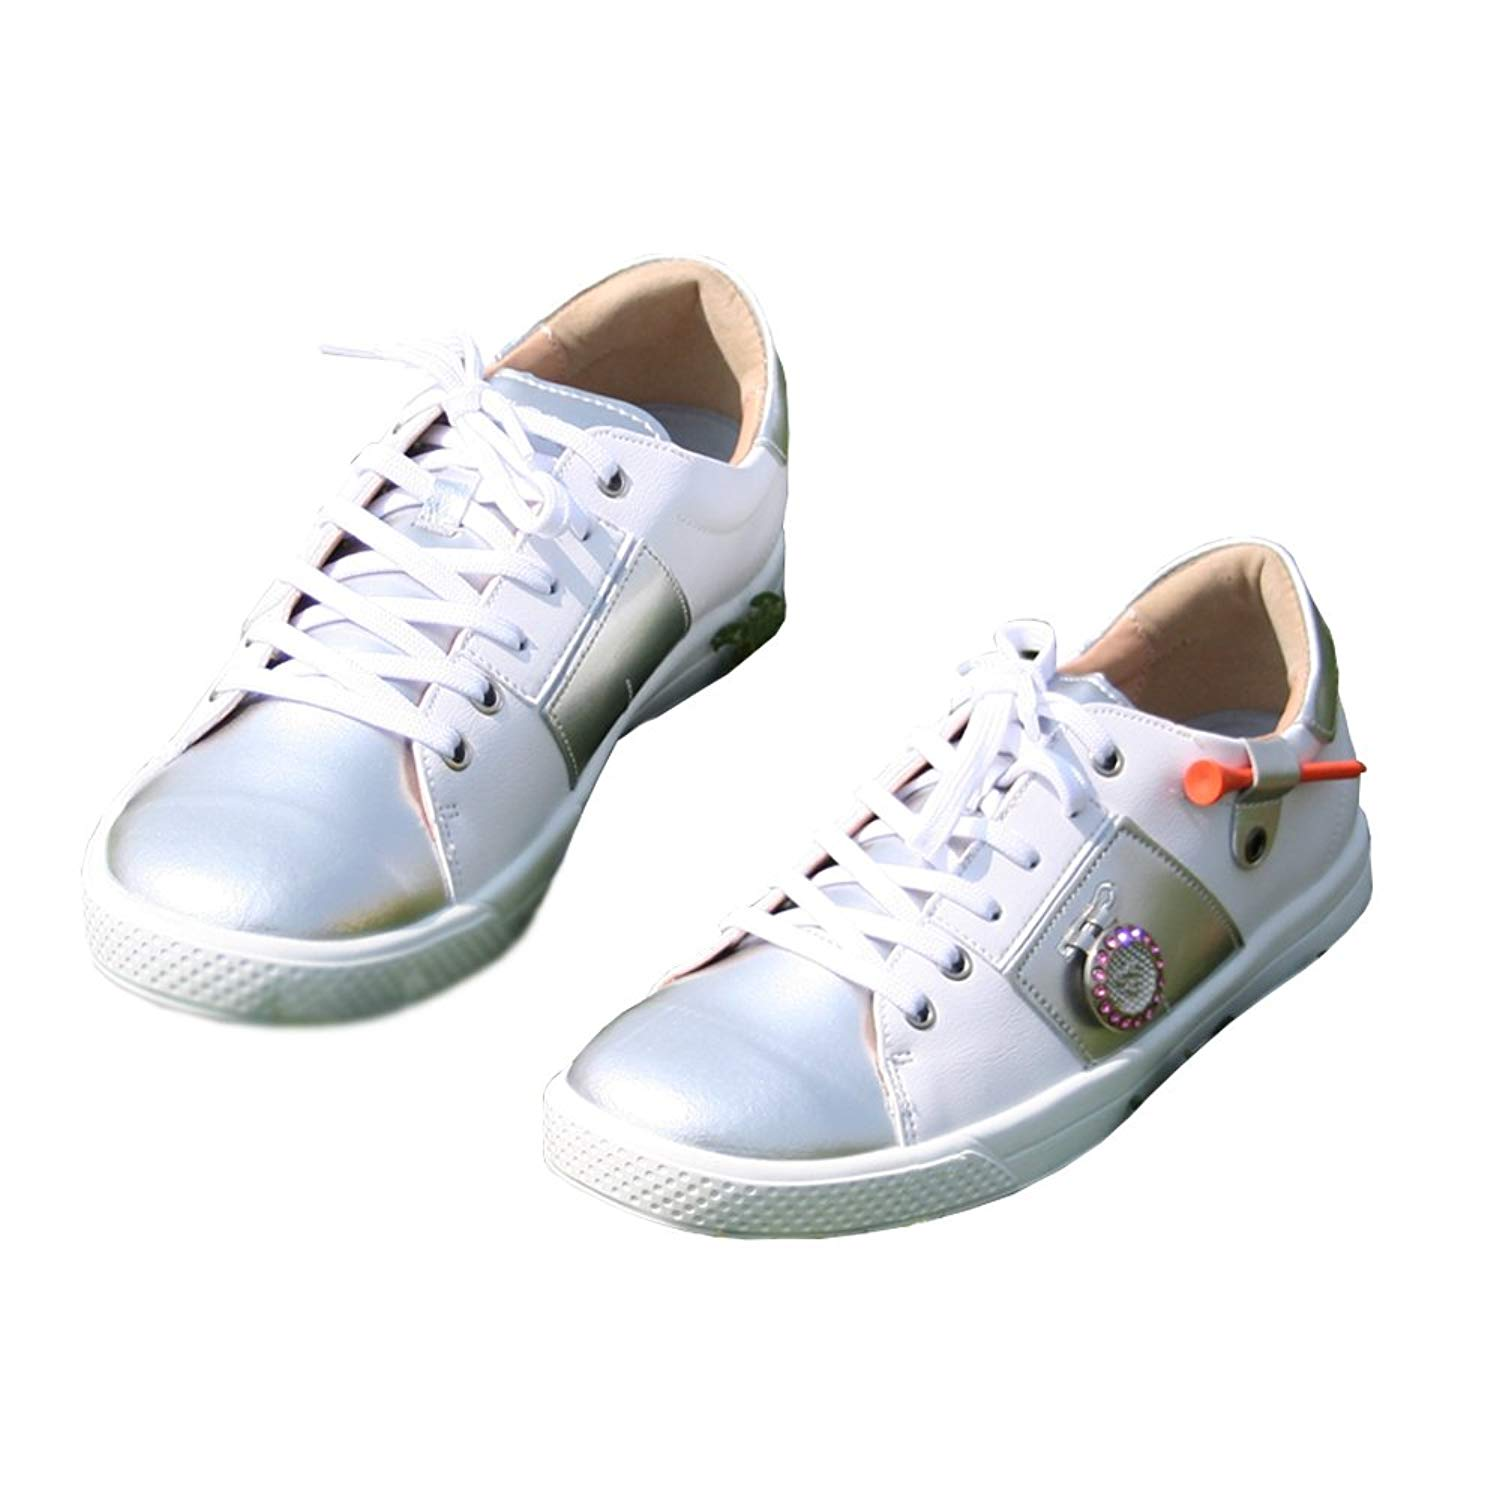 KARAKARA Spike-less Golf Shoes, TC-406, 3 Colors (White, Pink, Gray) 225 - 250 mm, for Women